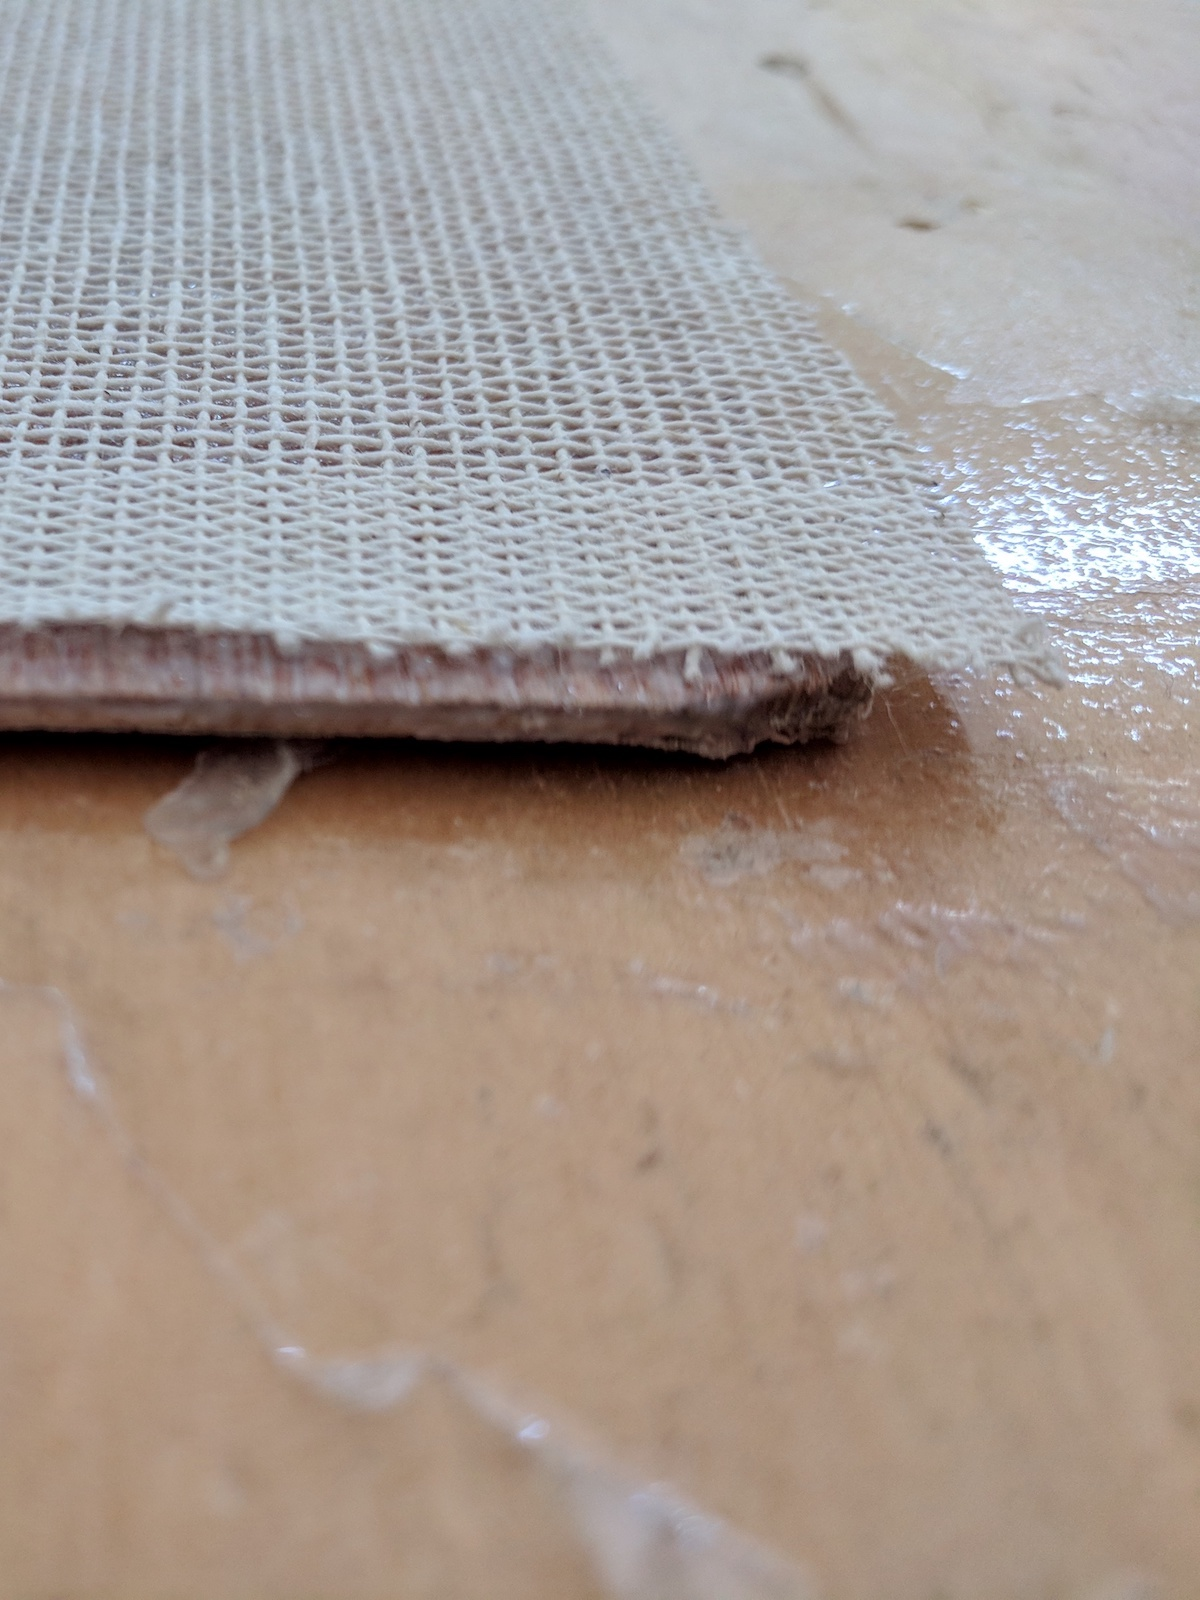 STEP 5 - Make sure the jute and wood are evenly attached